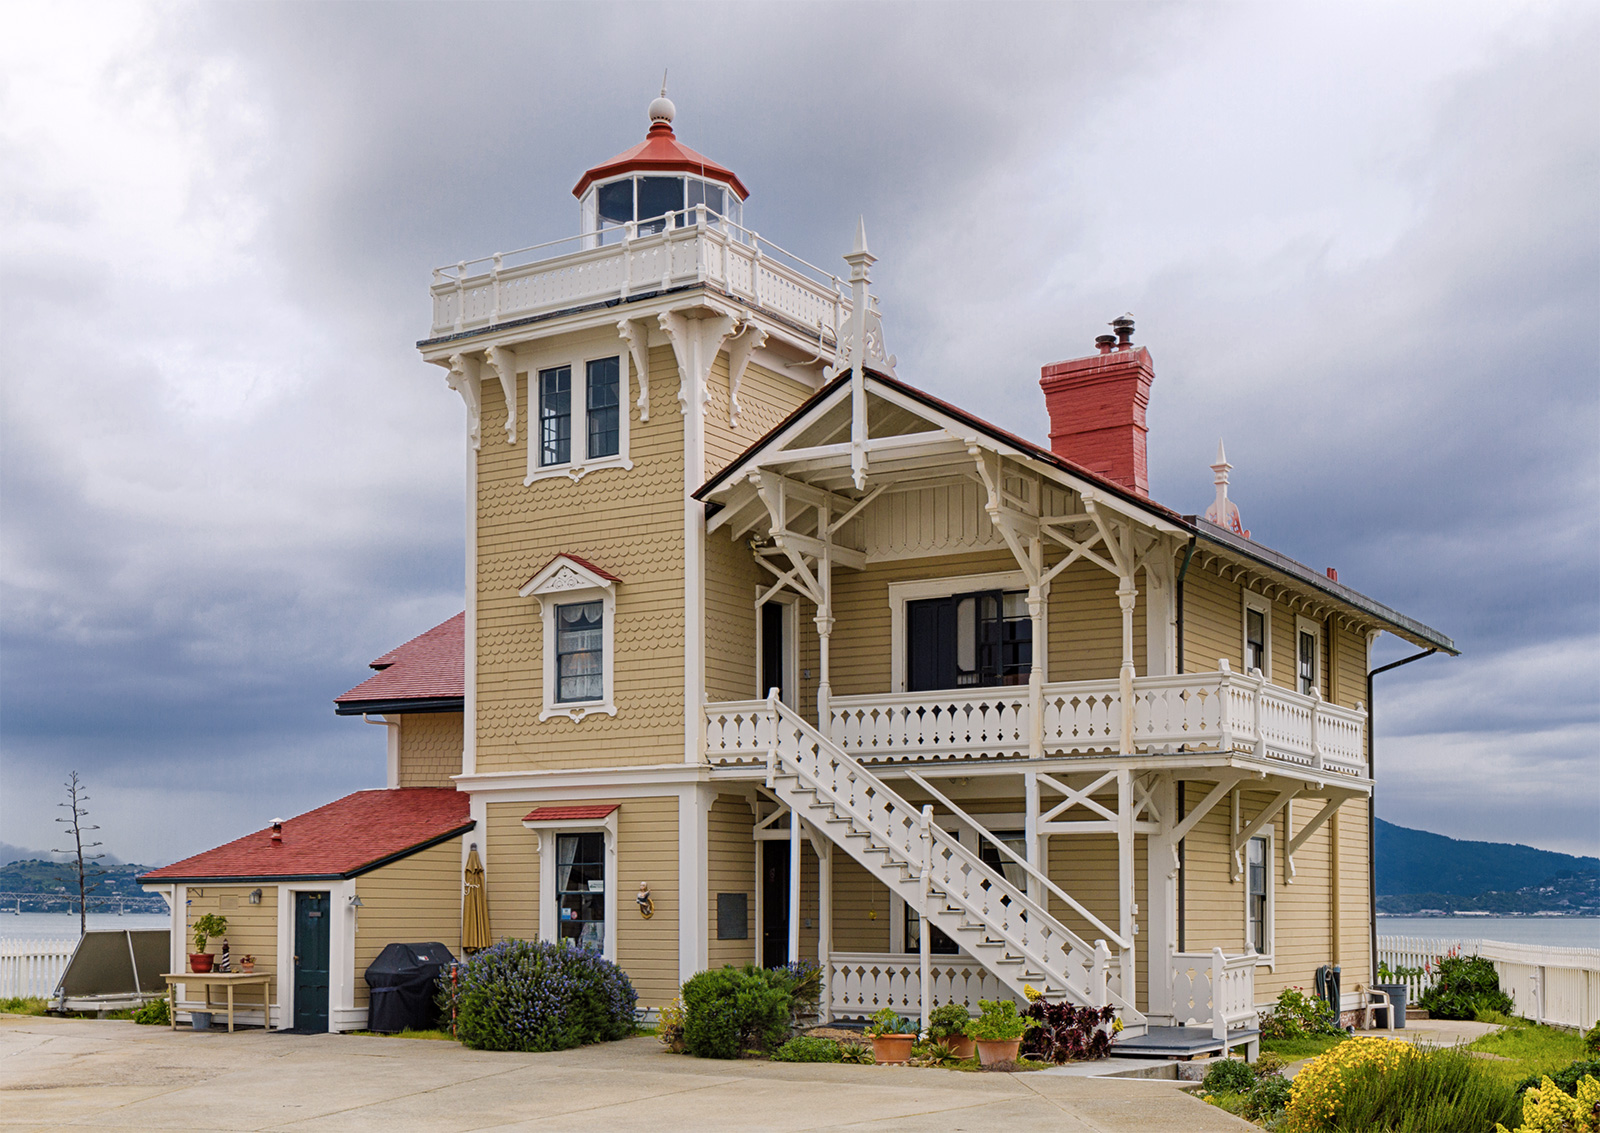 East Brother's Lighthouse inn is looking for a new keeper